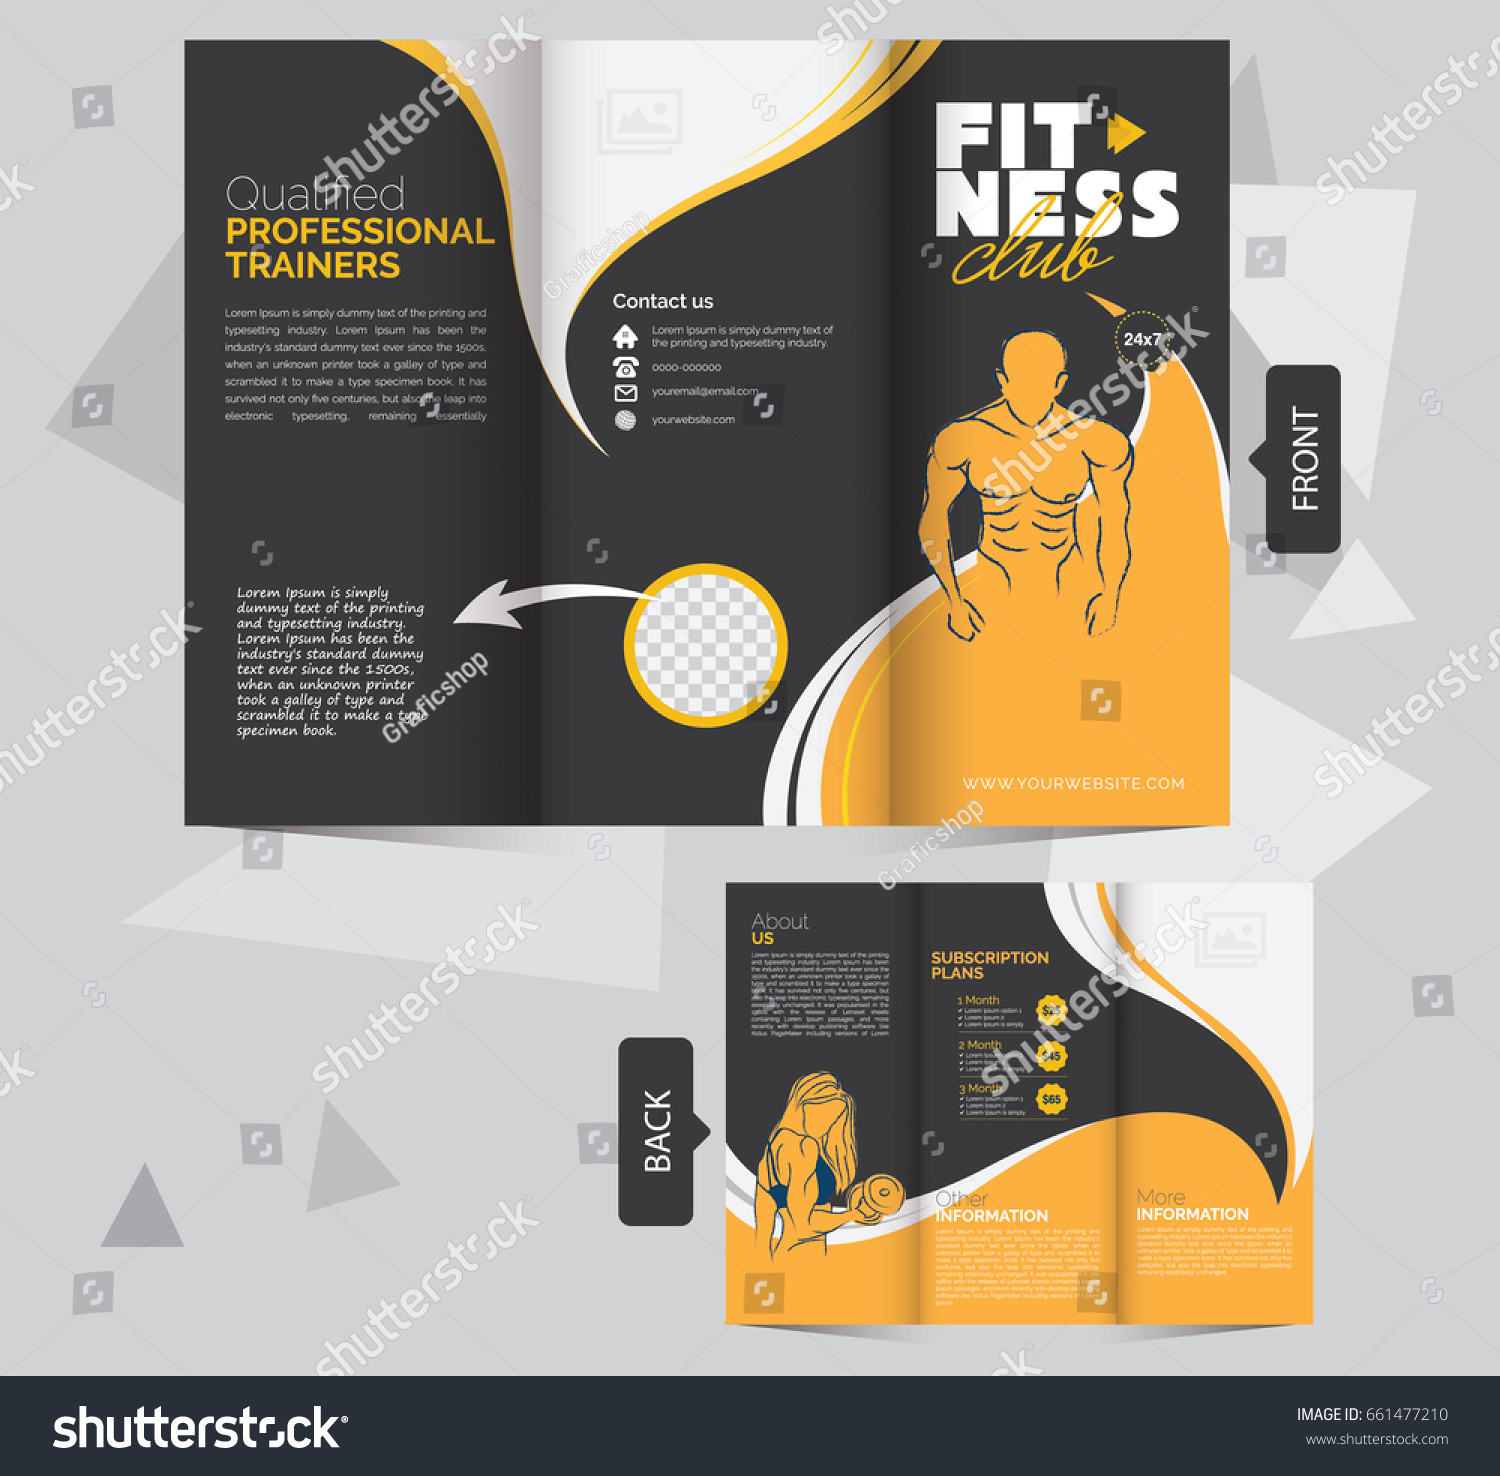 Trifold Fitness Brochure Design Template Fitness Stock Photo (Photo ...